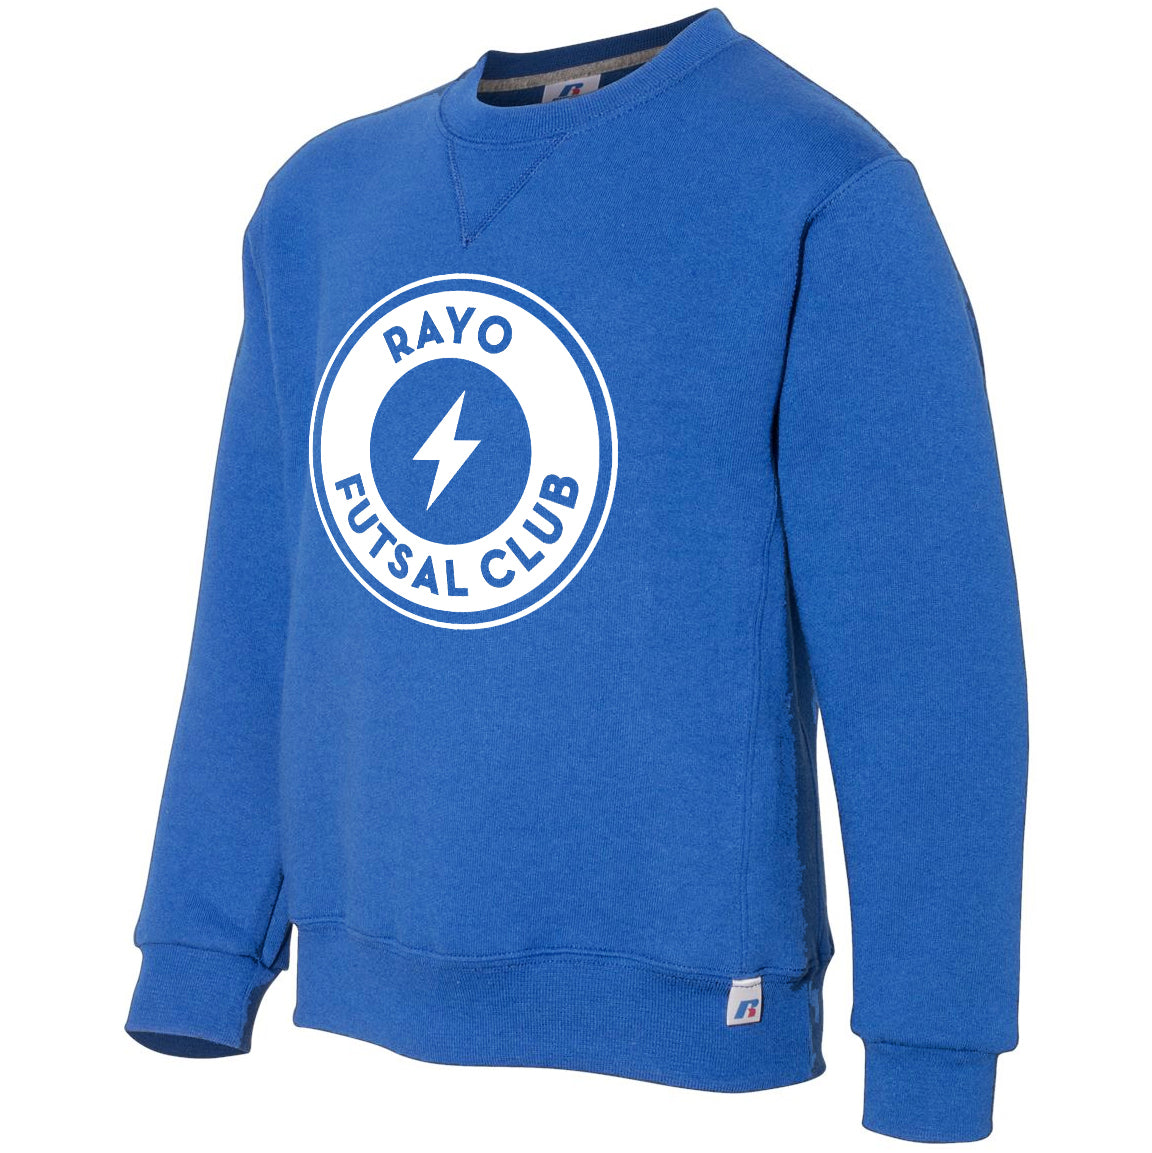 Rayo Futsal Club Russell Athletic - Youth Dri Power® Crewneck Sweatshirt